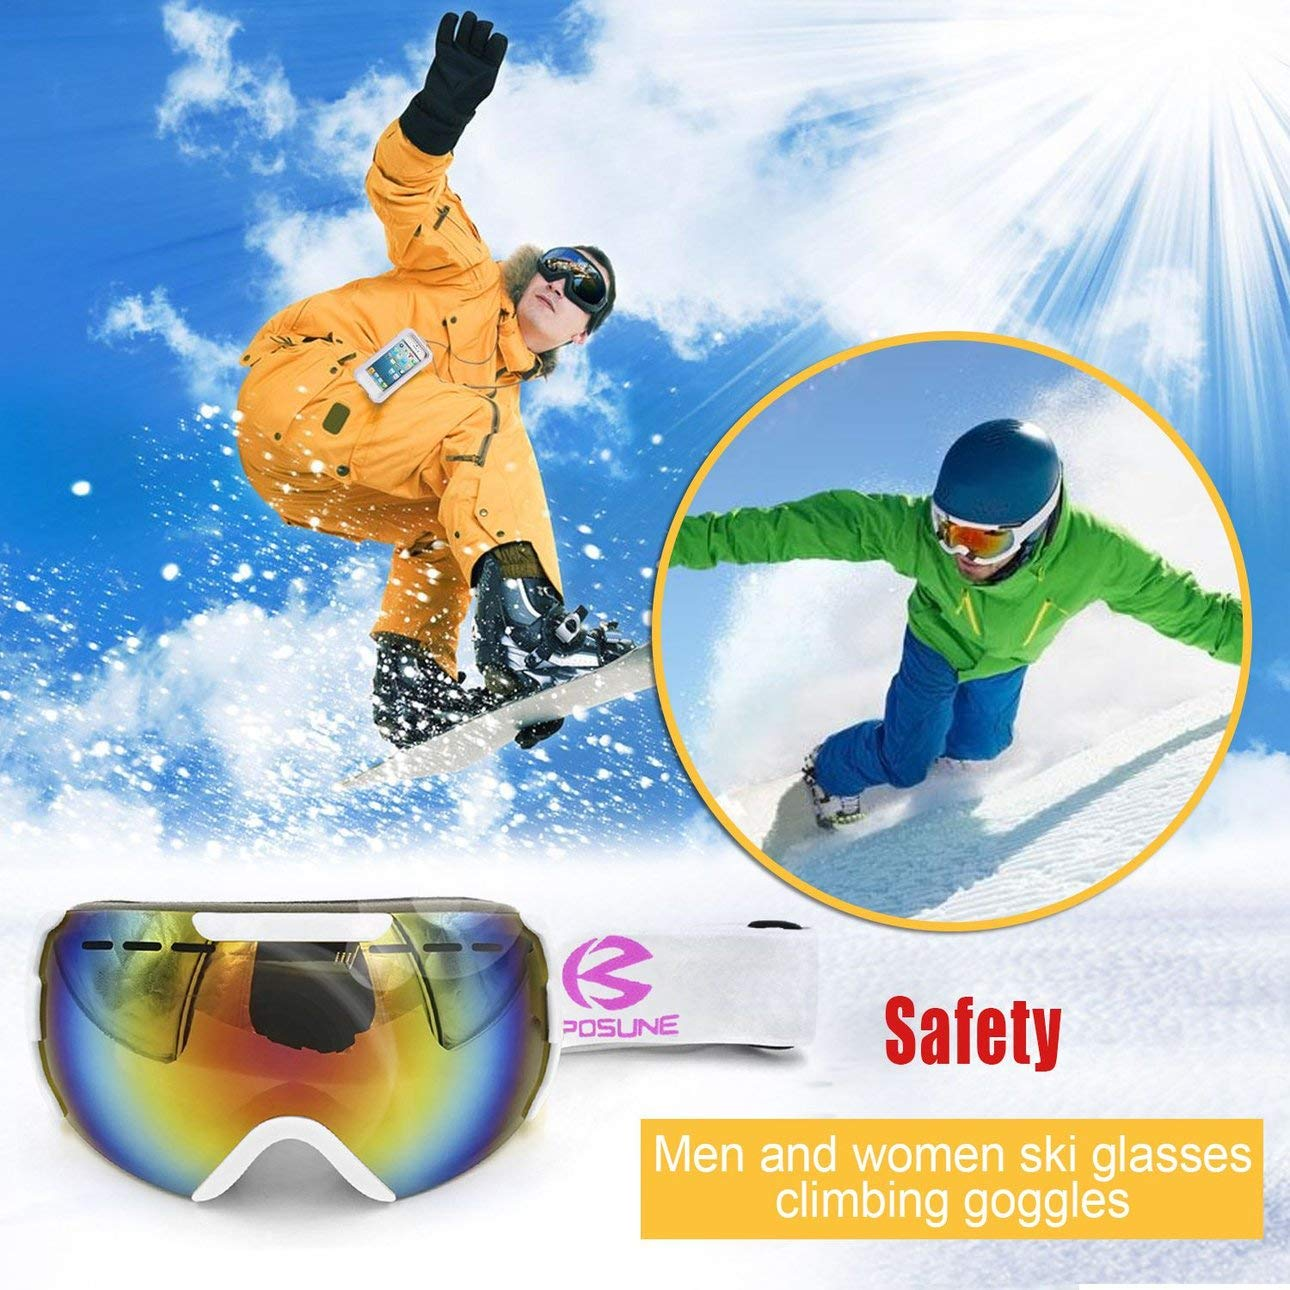 eb518ad28bdc Ballylelly Bright White Men Women Sposune Skiing Goggles Double Layers  Outdoor Winter Snow  Amazon.in  Clothing   Accessories